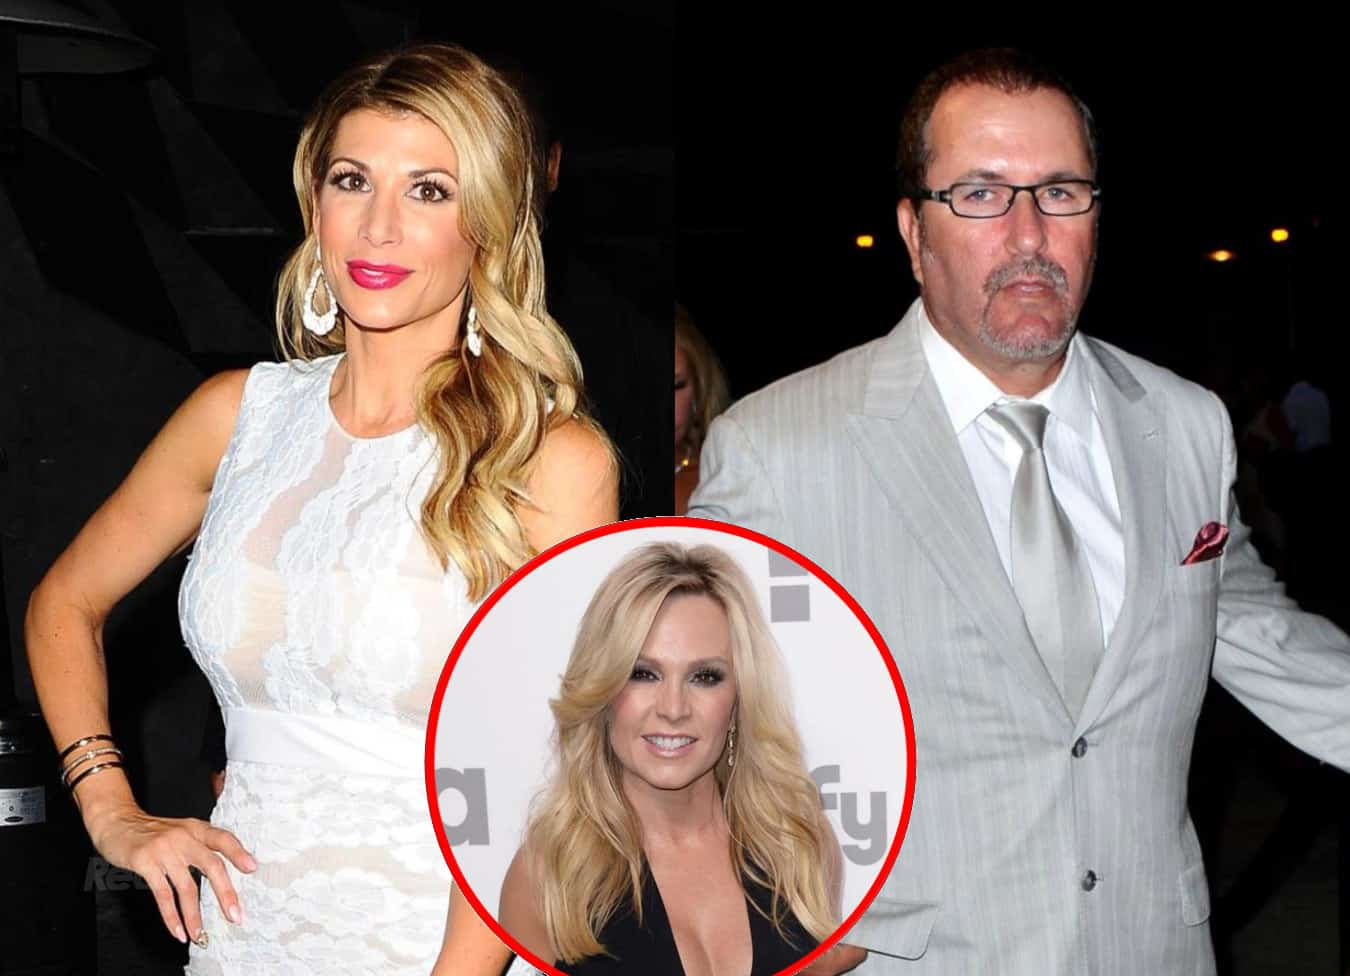 RHOC Star Alexis Bellino Dishes on 'Tumultuous' Divorce With Jim Bellino and Reveals Where They Stand Now, Plus Does She Blames Tamra for Not Coming Back to RHOC Full-Time?